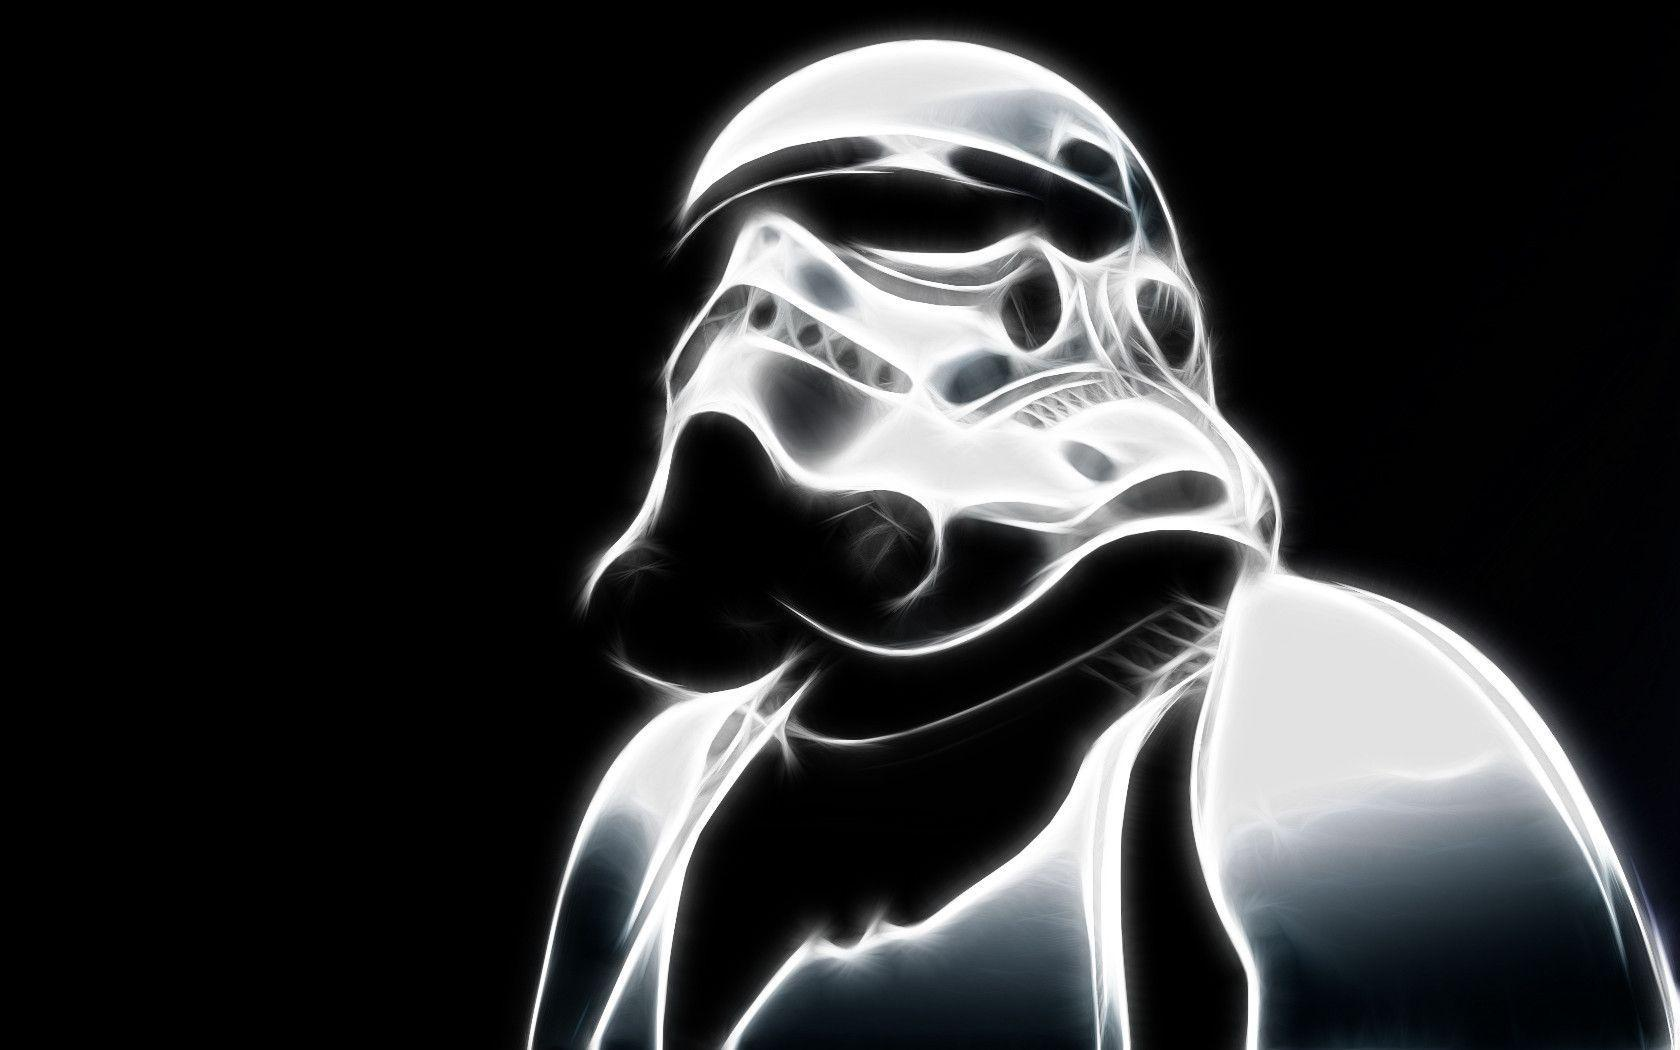 stormtrooper wallpaper star wars - photo #3